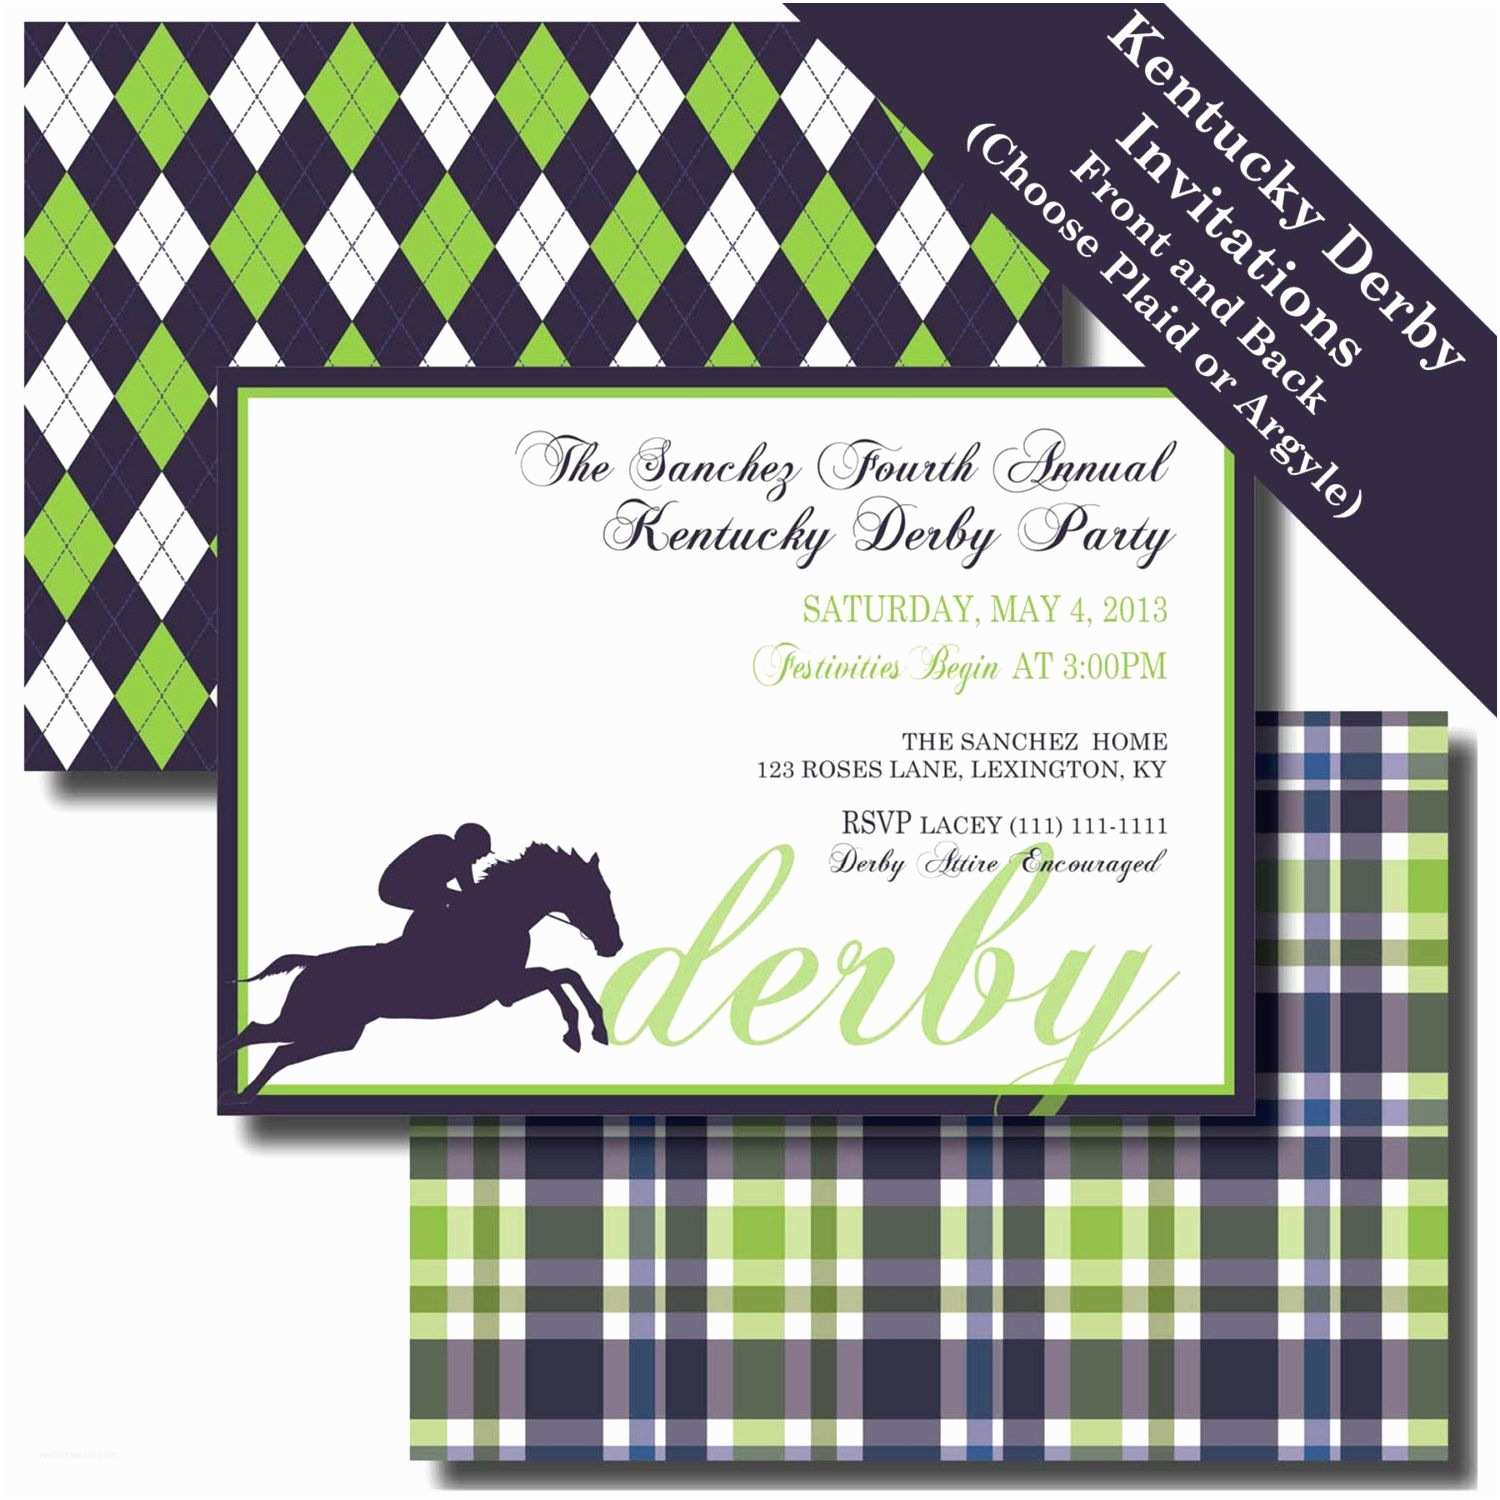 Derby Party Invitations Kentucky Derby Party Kentucky Derby Invitation Kentucky